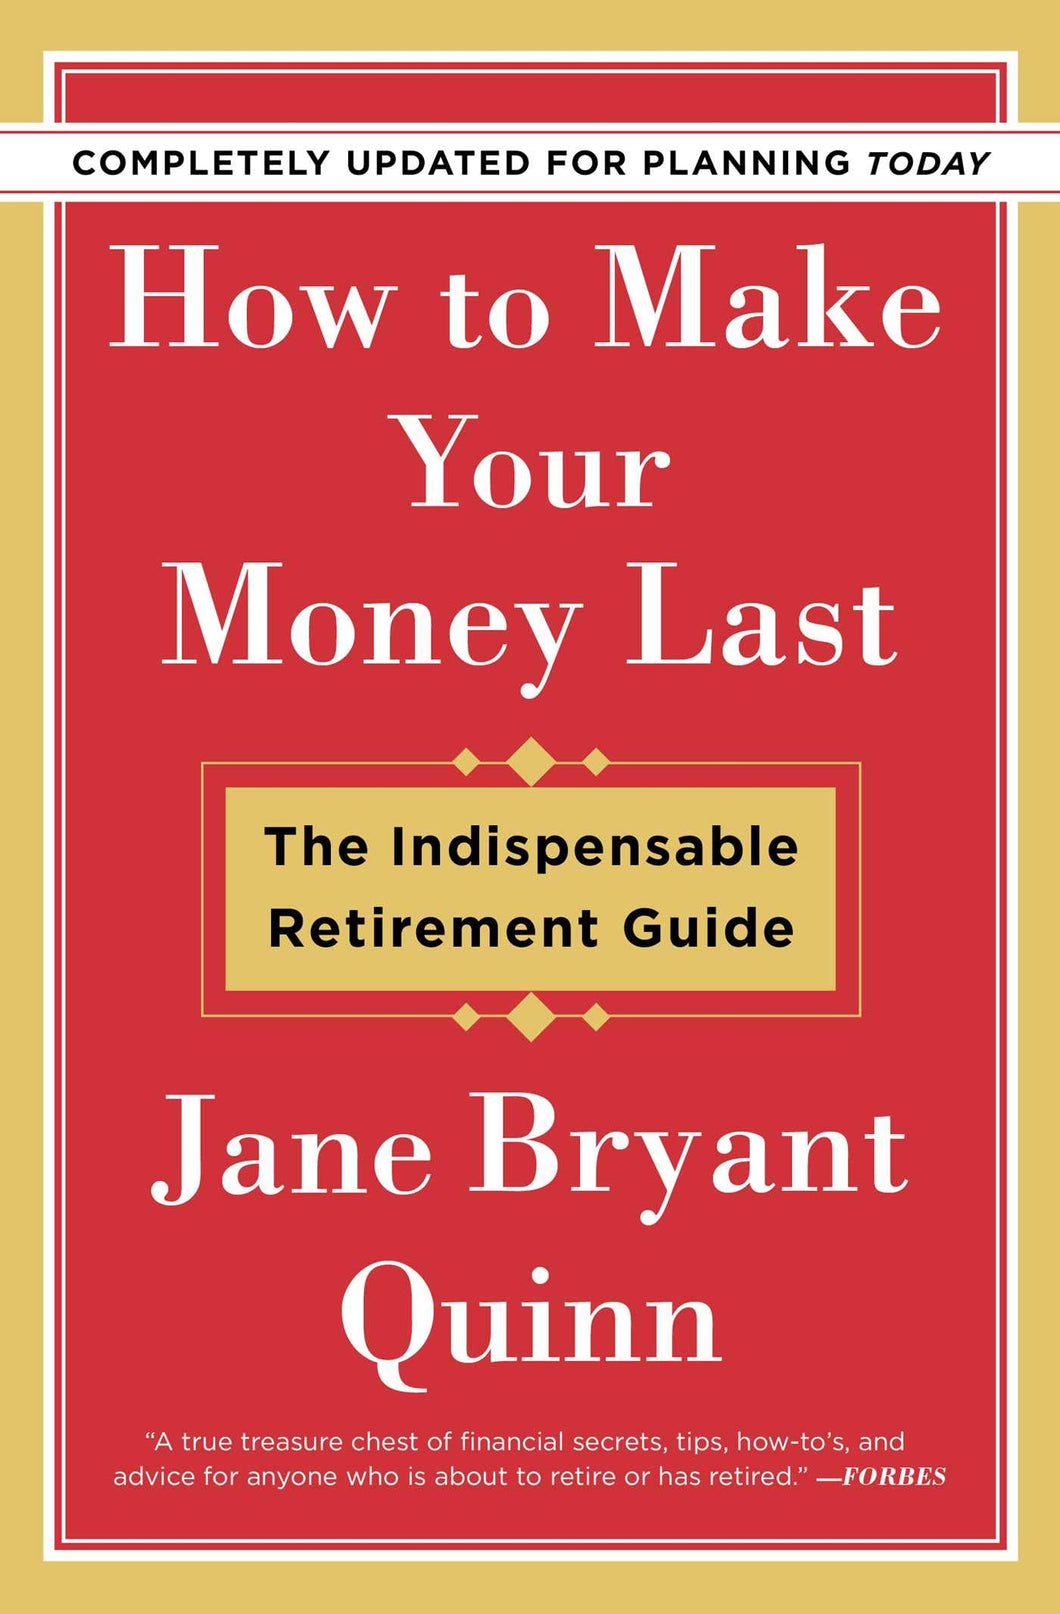 How to Make Your Money Last - Completely Updated for Planning Today: The Indispensable Retirement Guide - Tolerant Planet